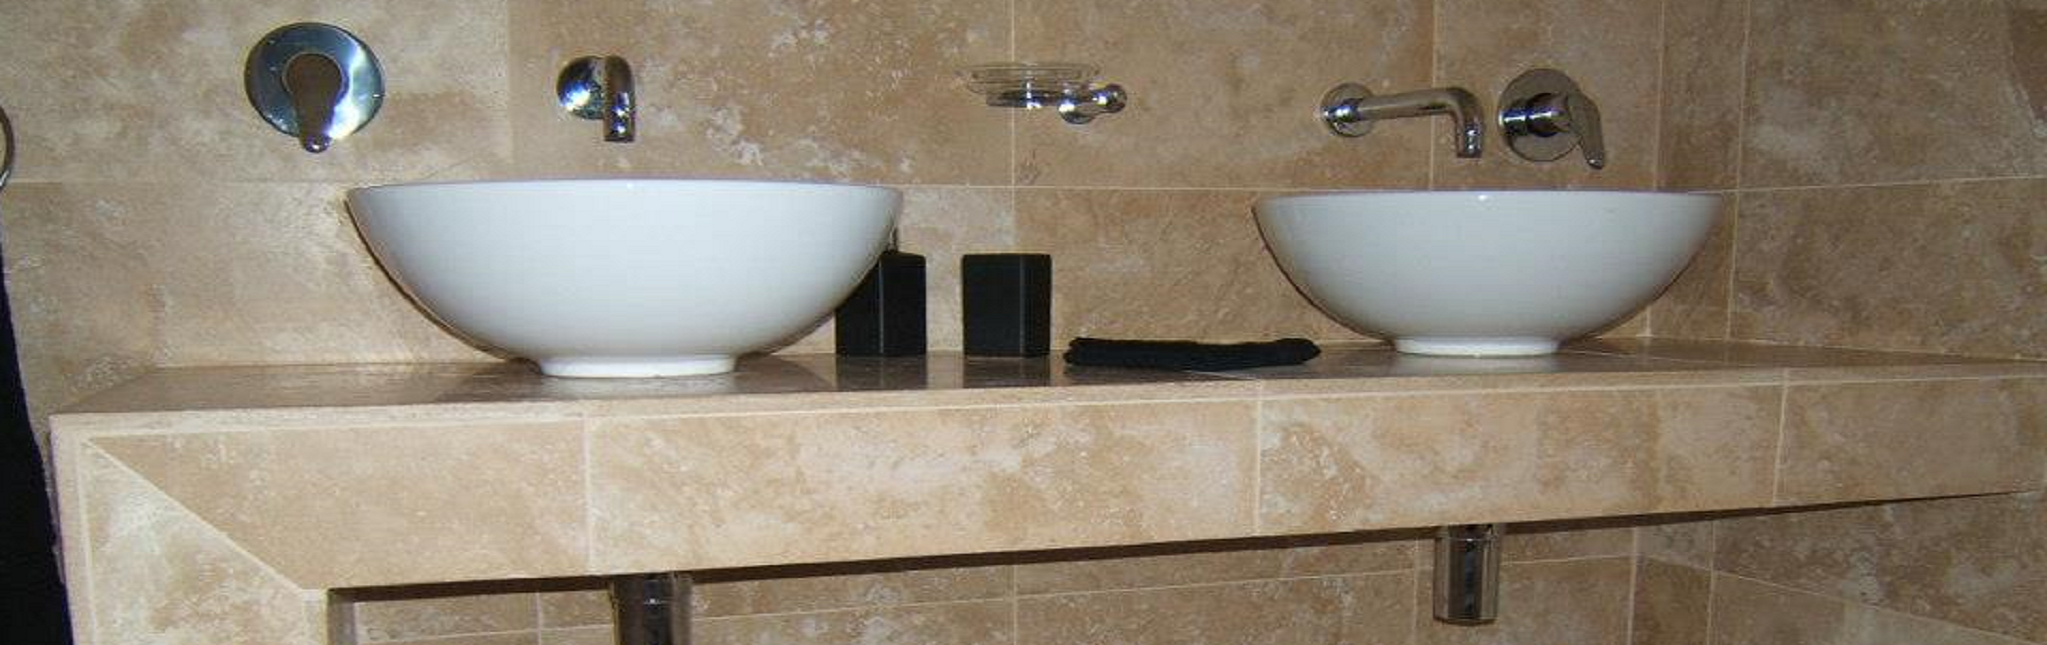 We provide professional and expert solutions to all your bathroom renovations, plumbing and tiling needs.